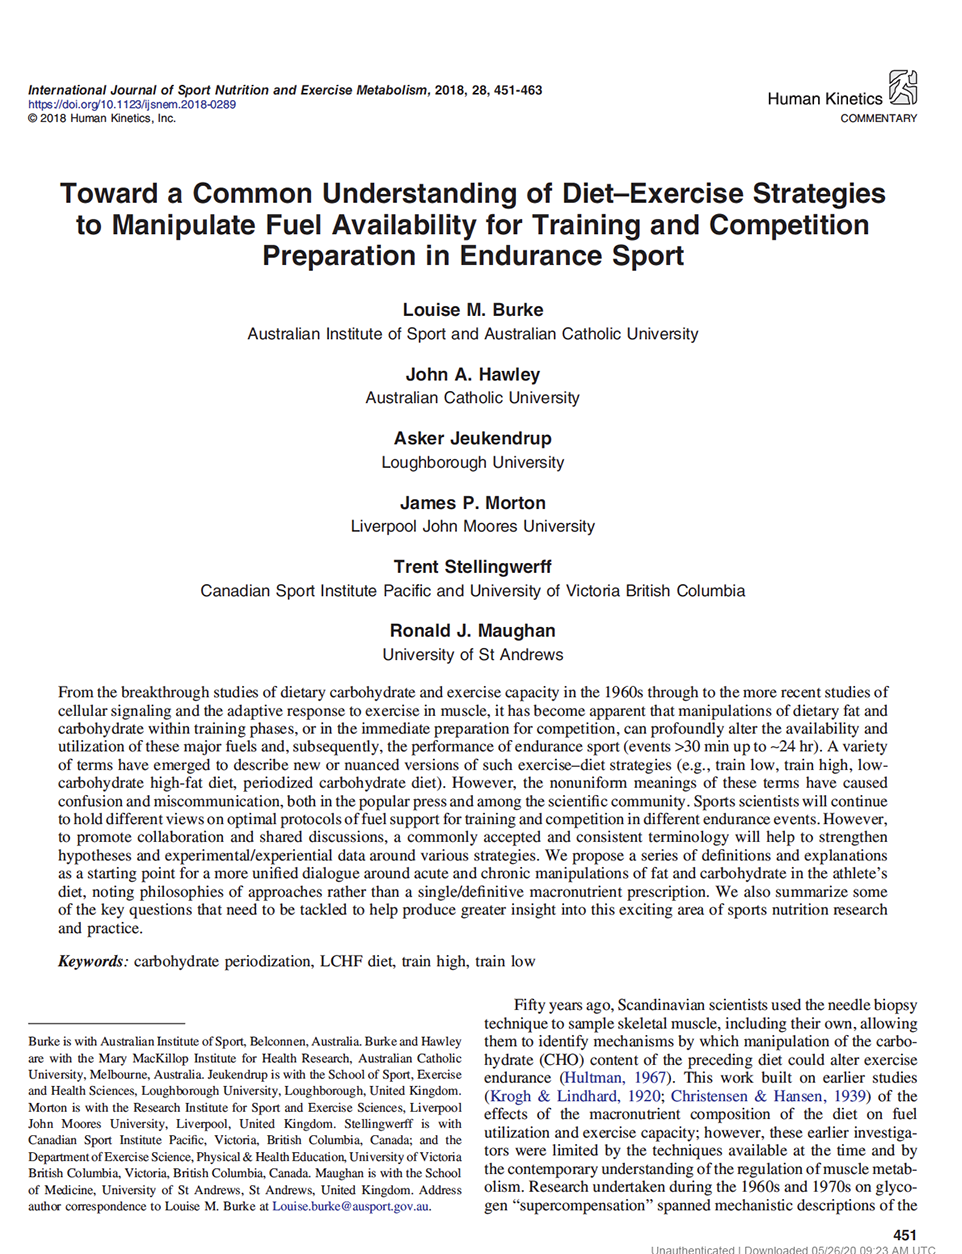 Toward a common understanding of diet–exercise strategies